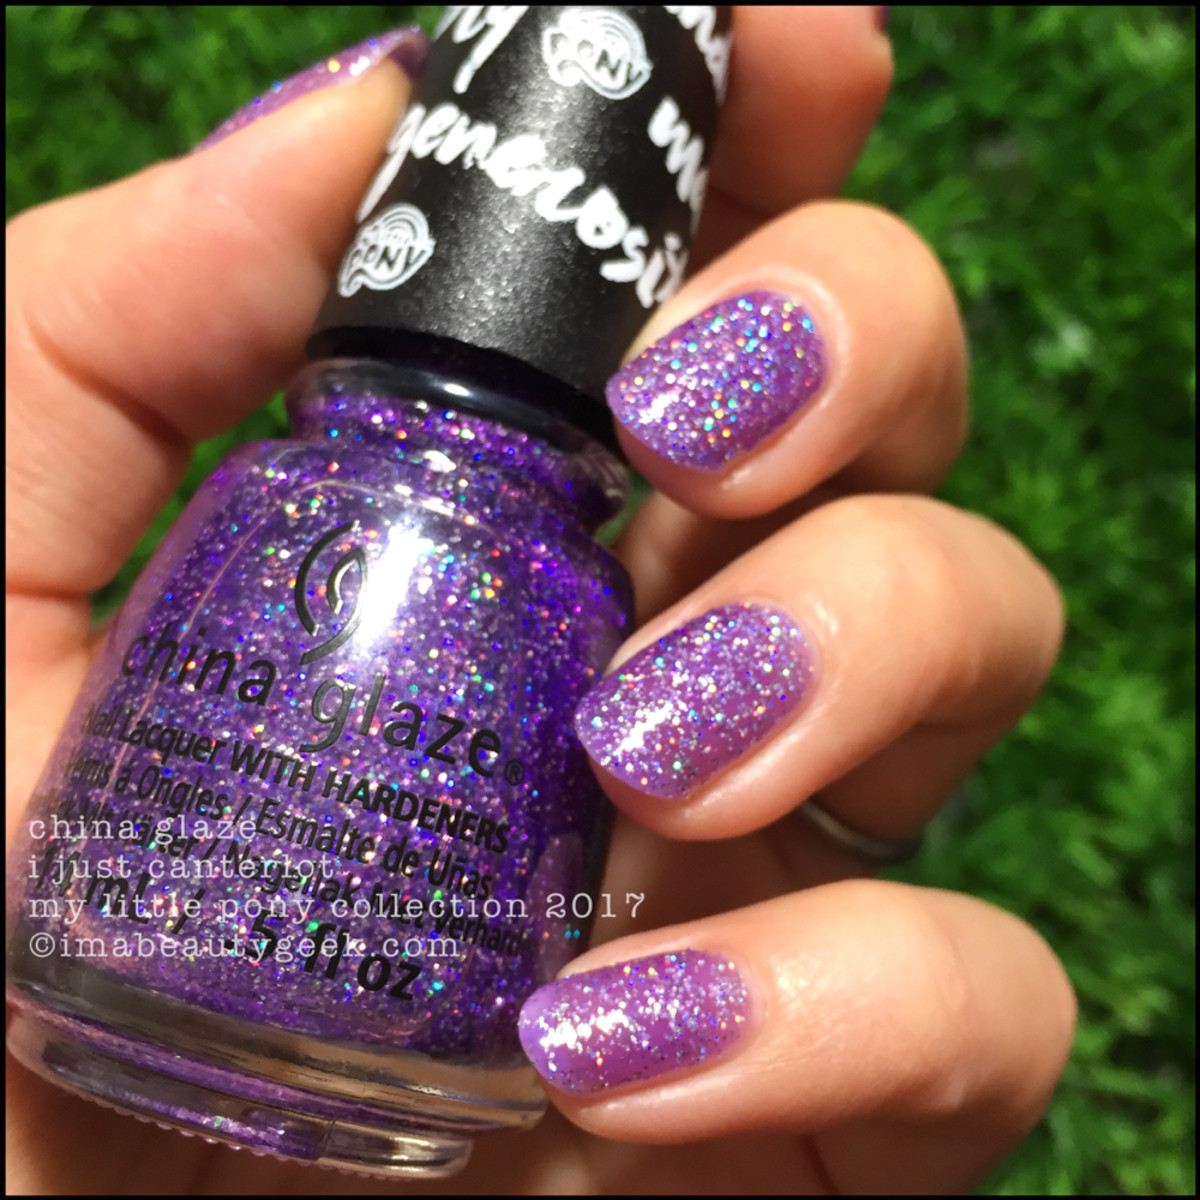 China Glaze I Just Canterlot (fuzzy) - My Little Pony Collection 2017